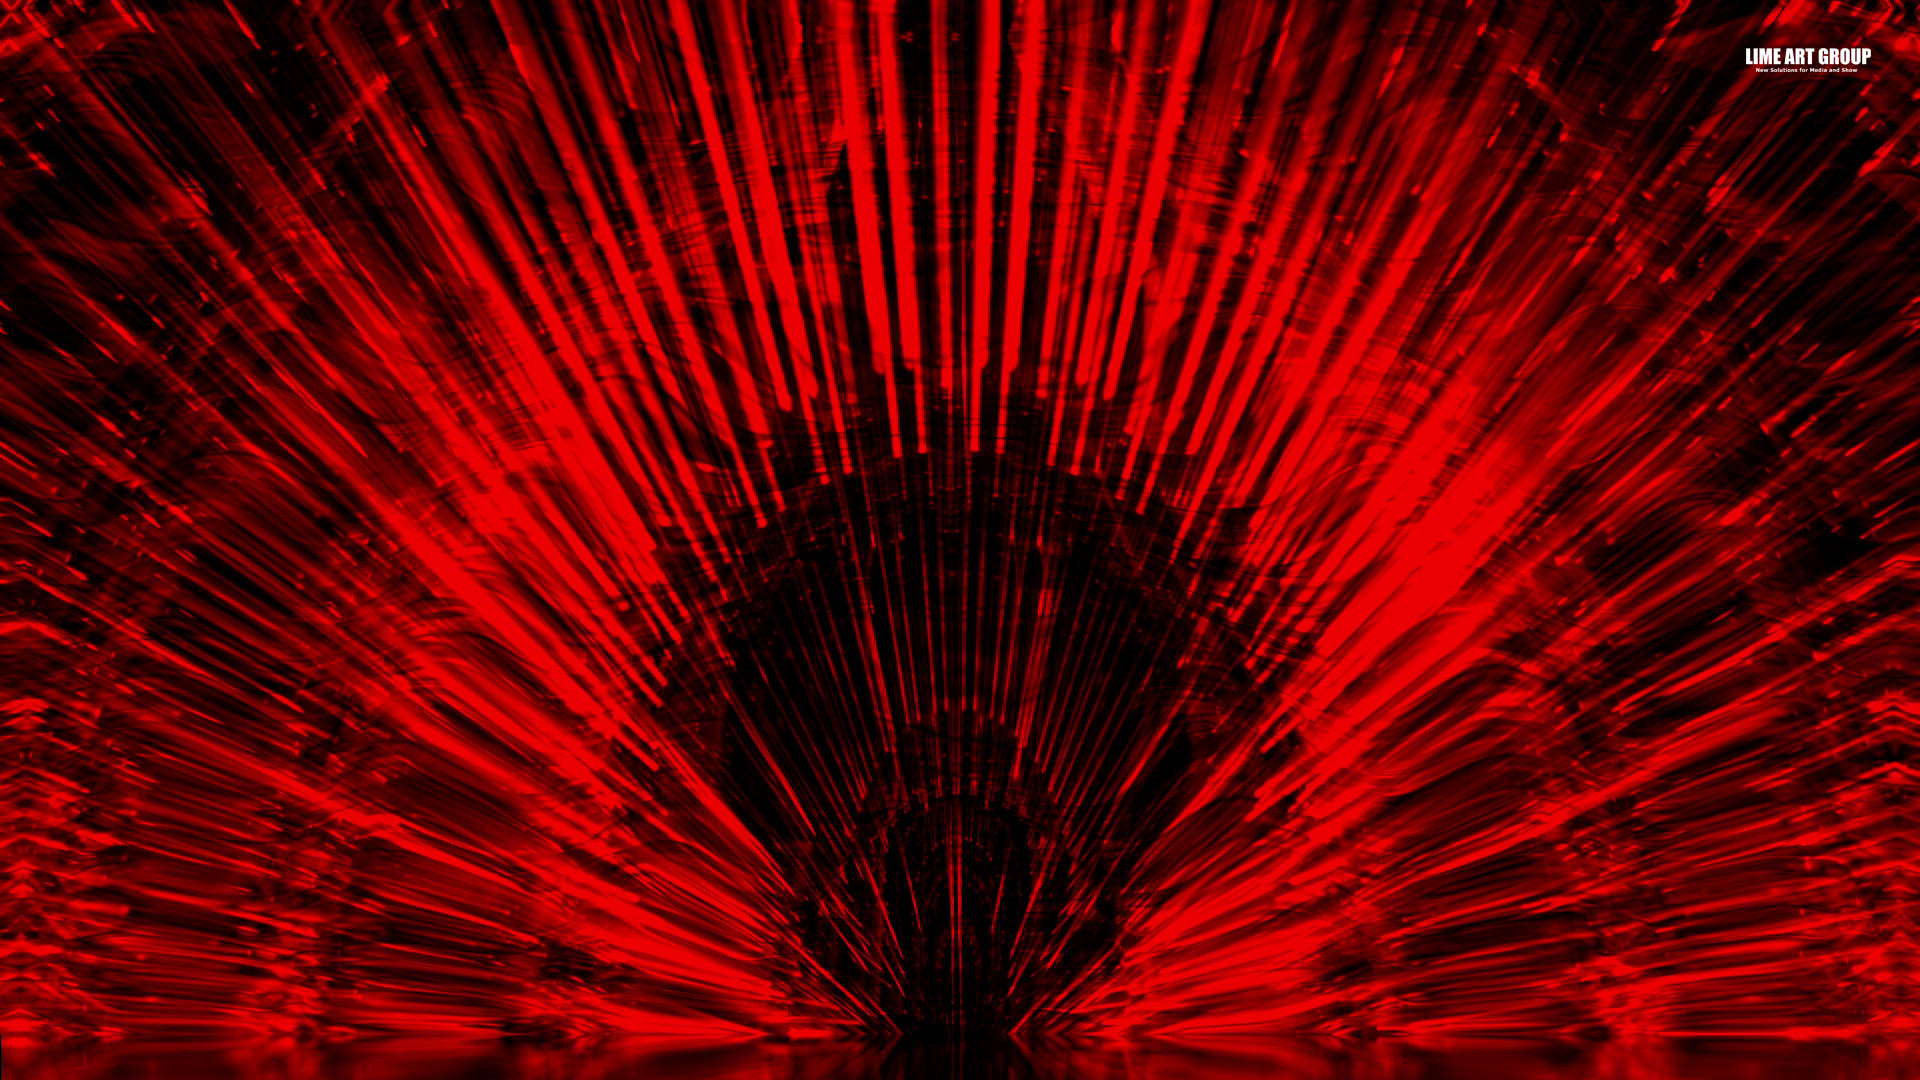 Video Loops, Red color vj loops abstract 10